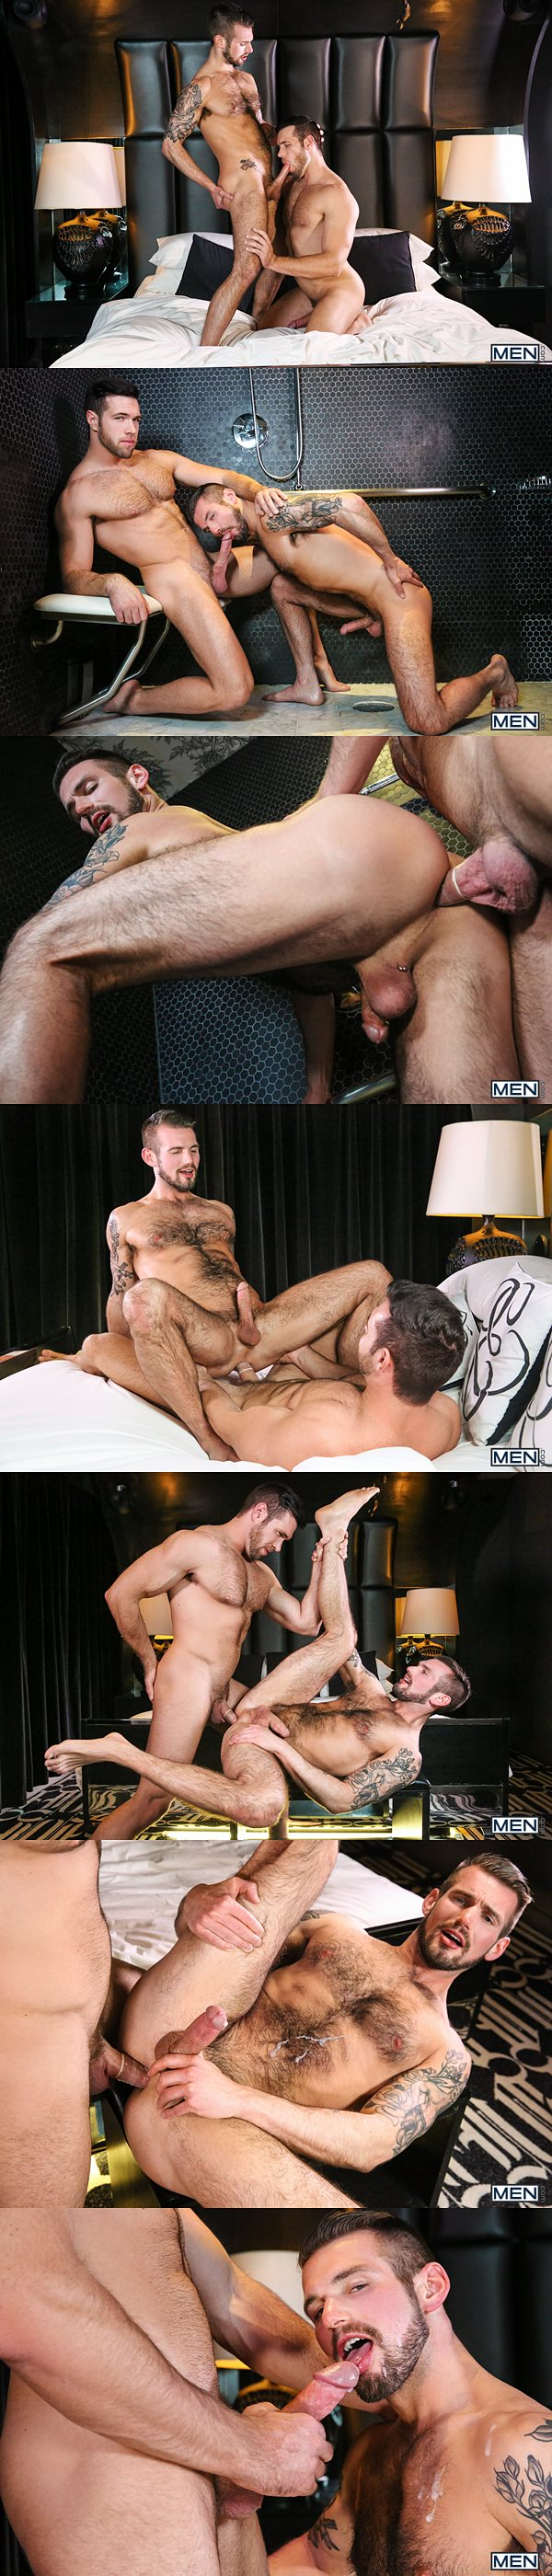 Alex Mecum fucks the cum out of Chris Harder in Married Men Part 3 at Str8togay